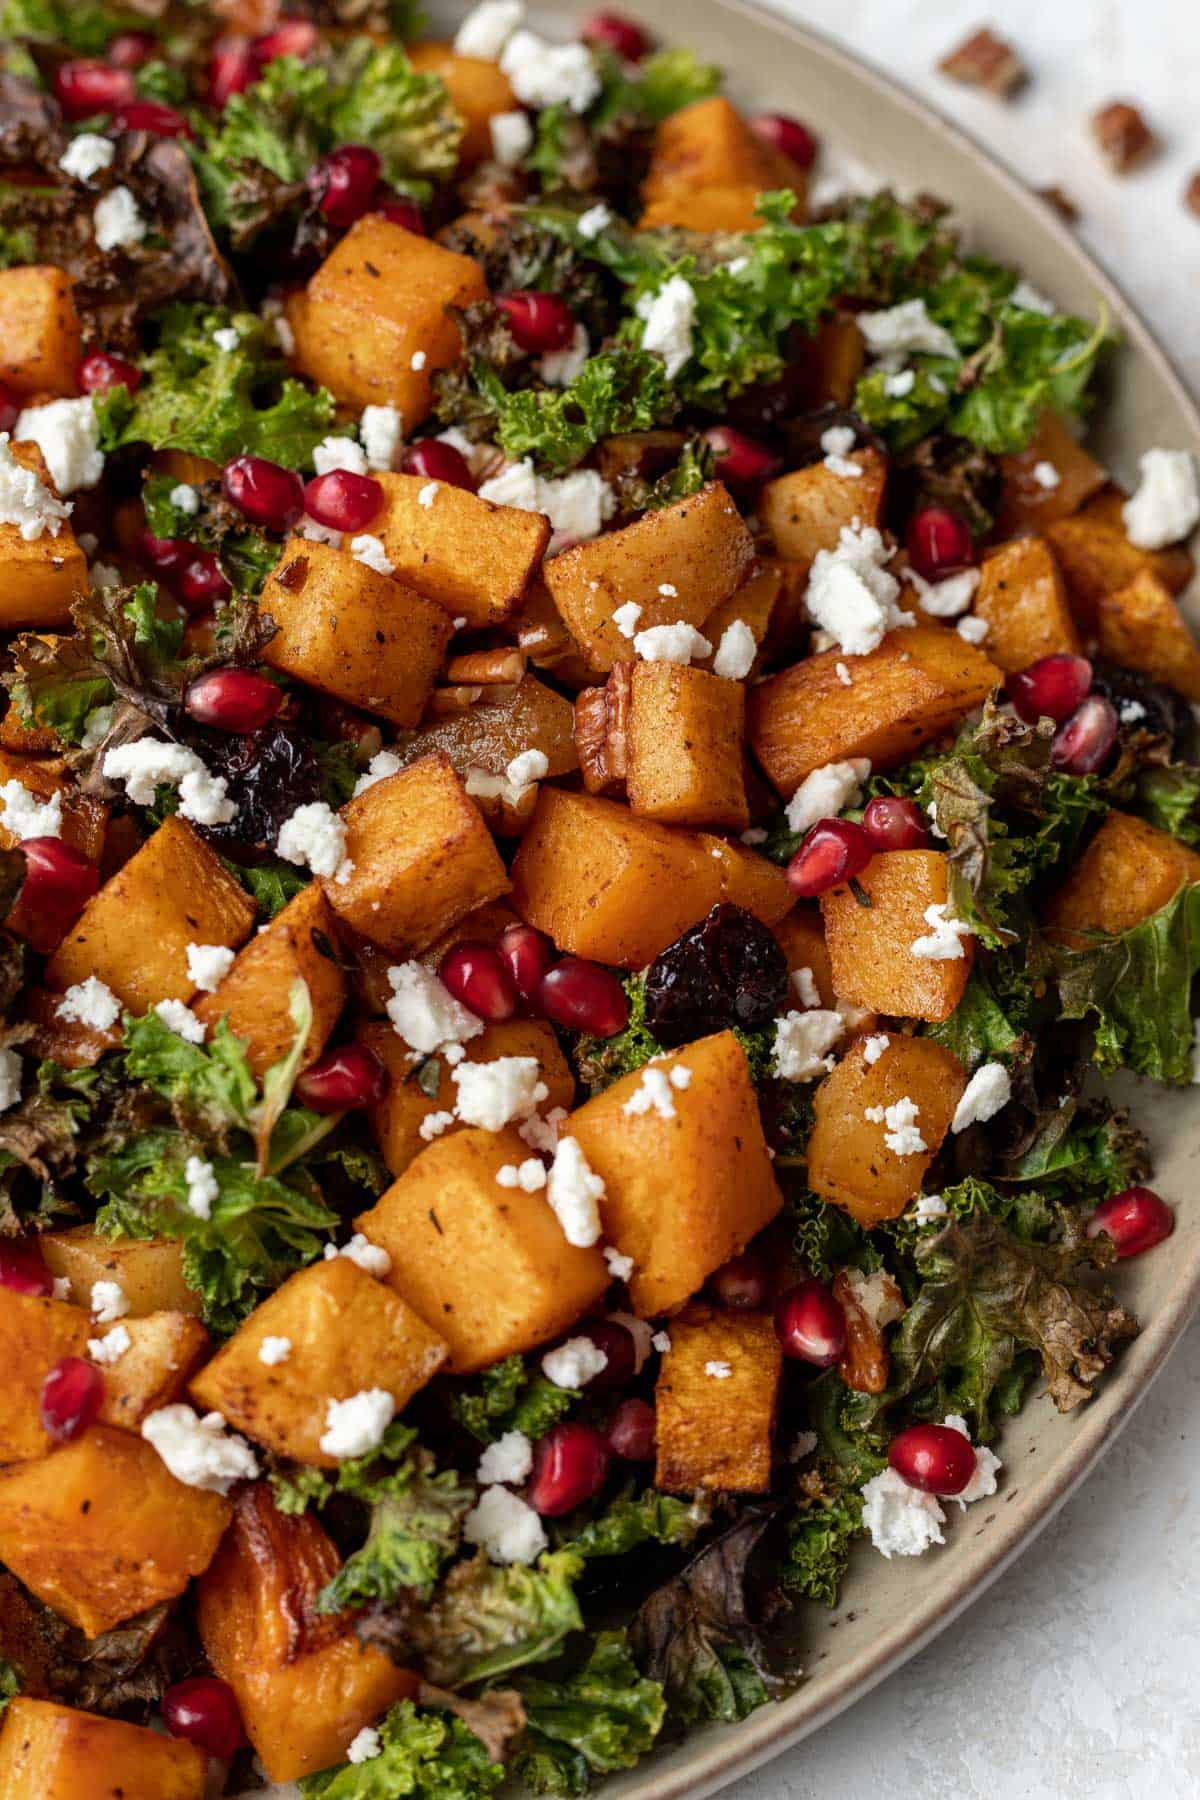 A closeup view of maple cinnamon squash, baked apples, kale chips, feta, pomegranate seeds, and toasted pecans in a beige serving bowl.